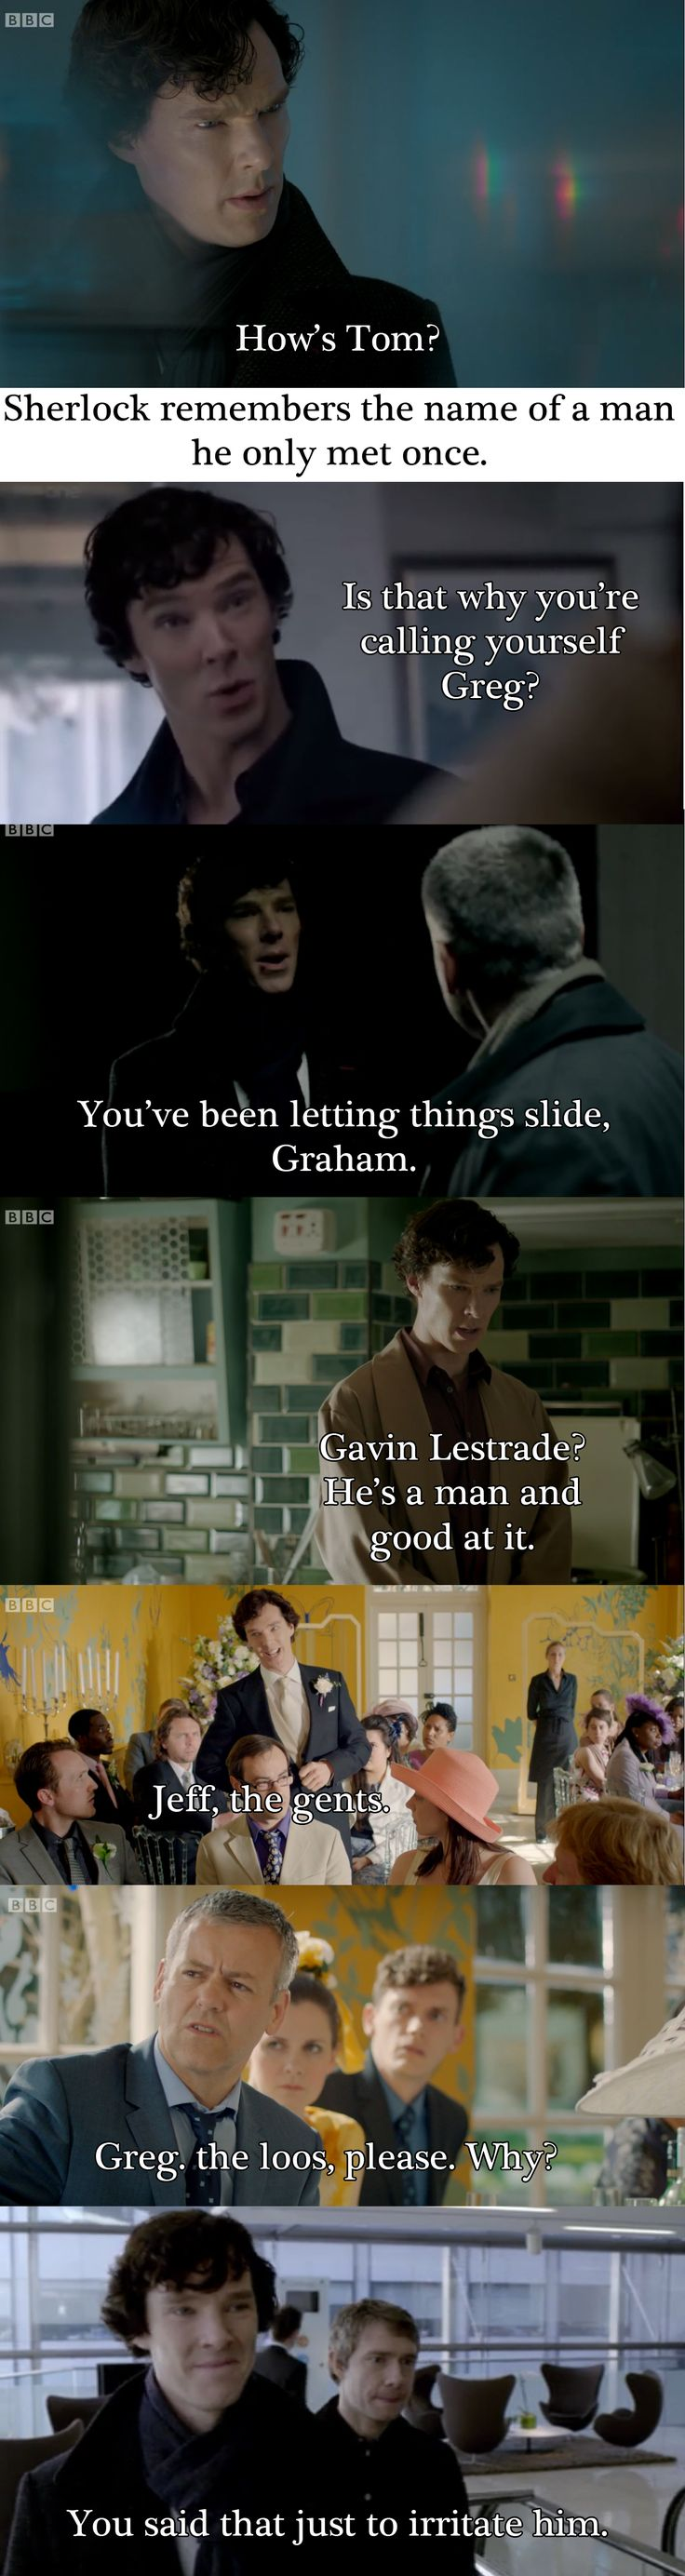 "I think he knows Lestrade's name, he just likes to irritate him. <--Perhaps, but I think he feels that ""Greg"" is unnecessary when ""Lestrade"" works just fine. He makes an effort to remember Tom because he cares about Molly."